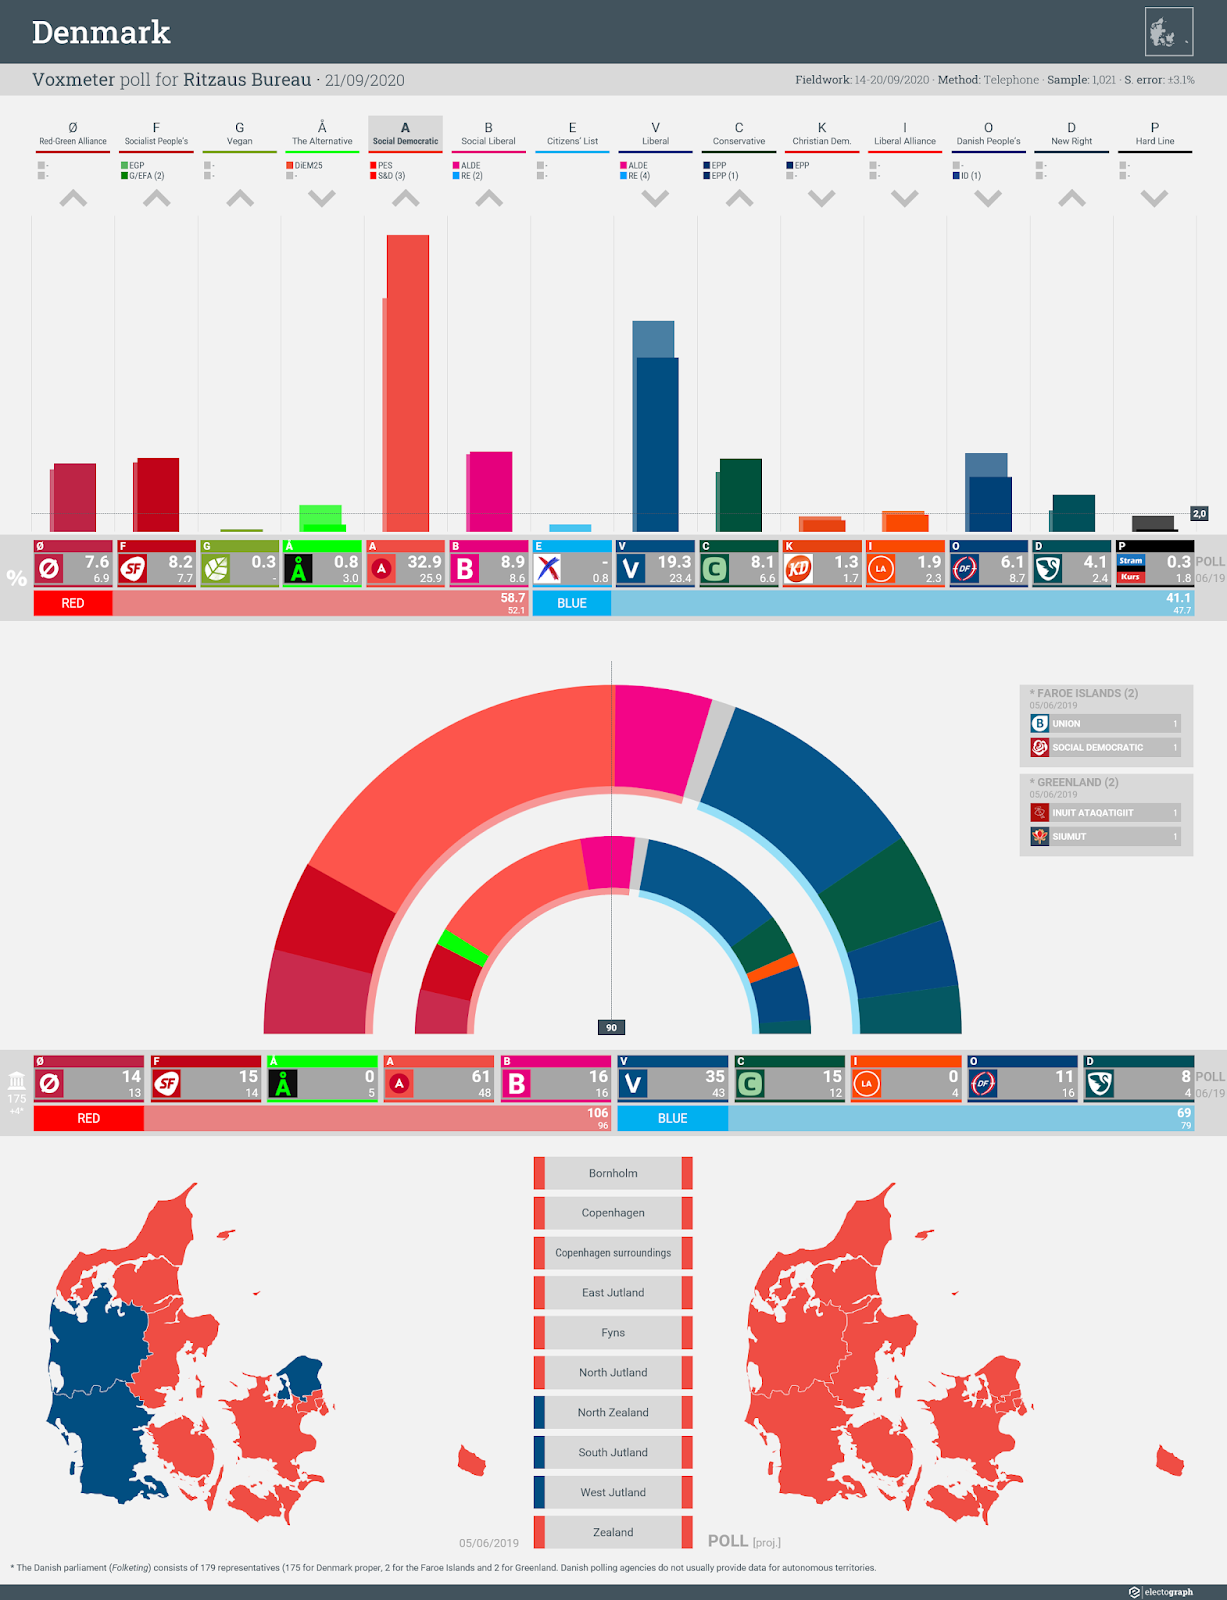 DENMARK: Voxmeter poll chart for Ritzaus Bureau, 21 September 2020